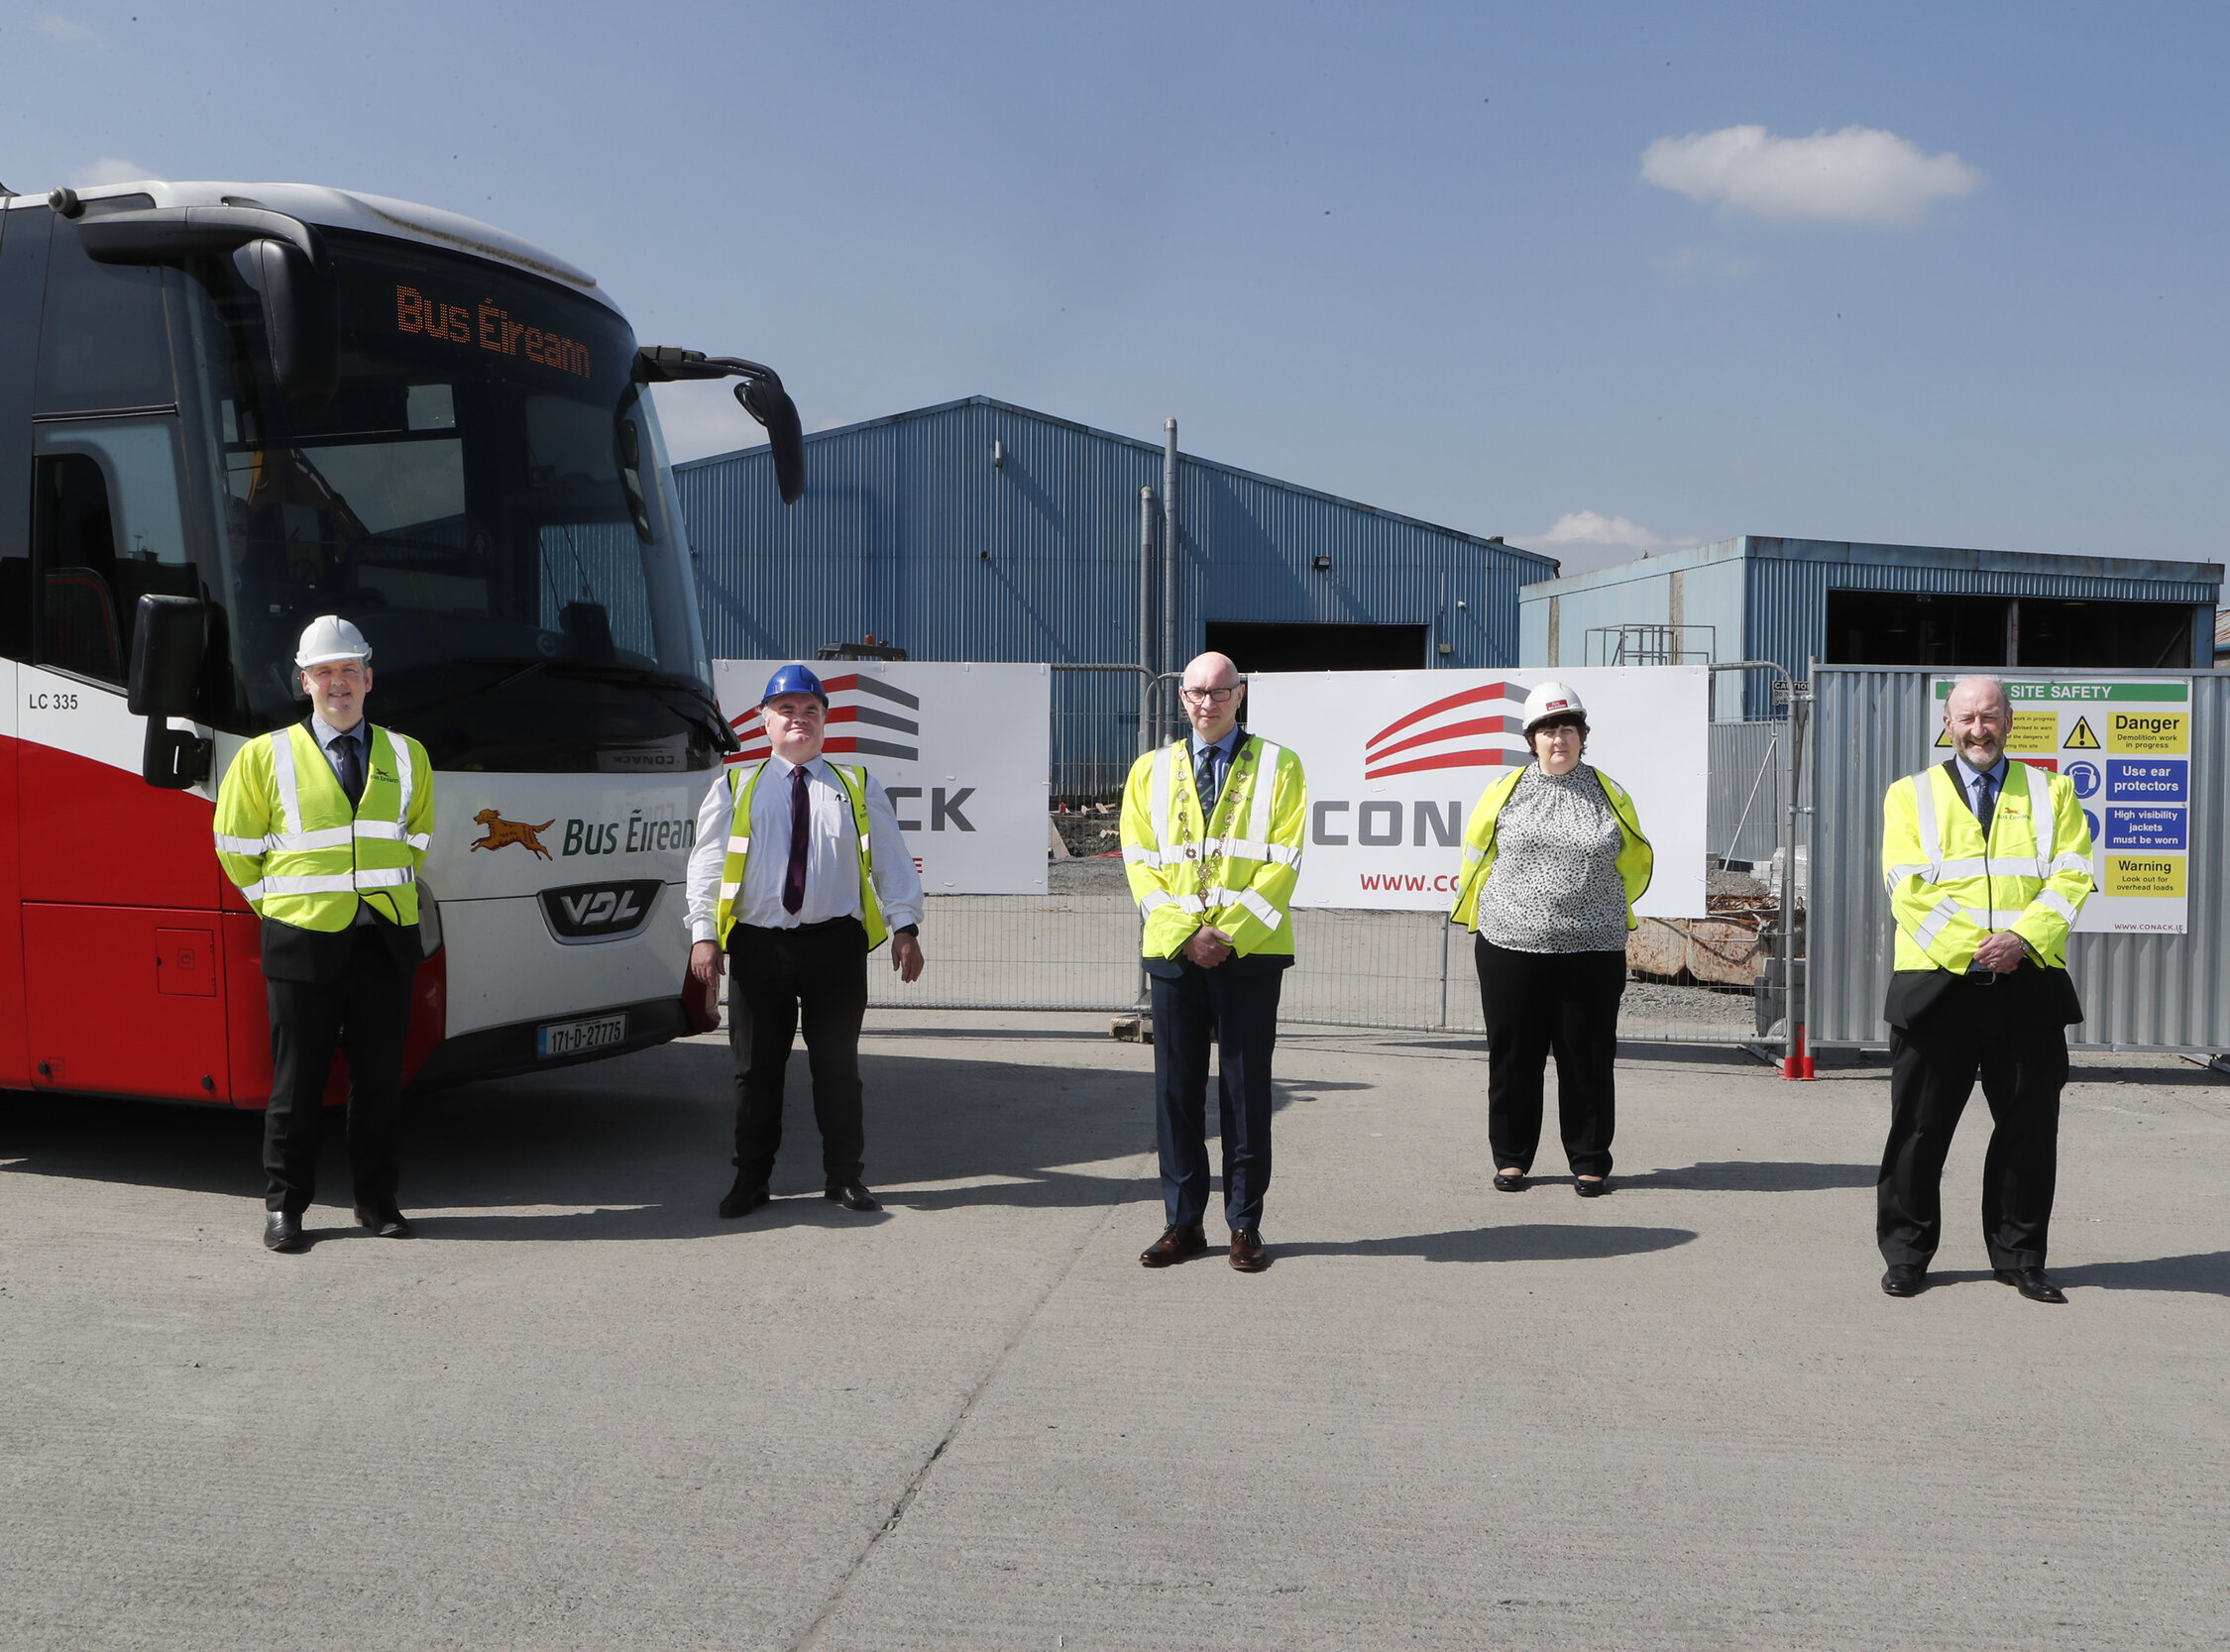 Bus Éireann, has announced the commencement of its redevelopment of Roxboro bus depot pictured above and maintenance facility at Roxboro Road